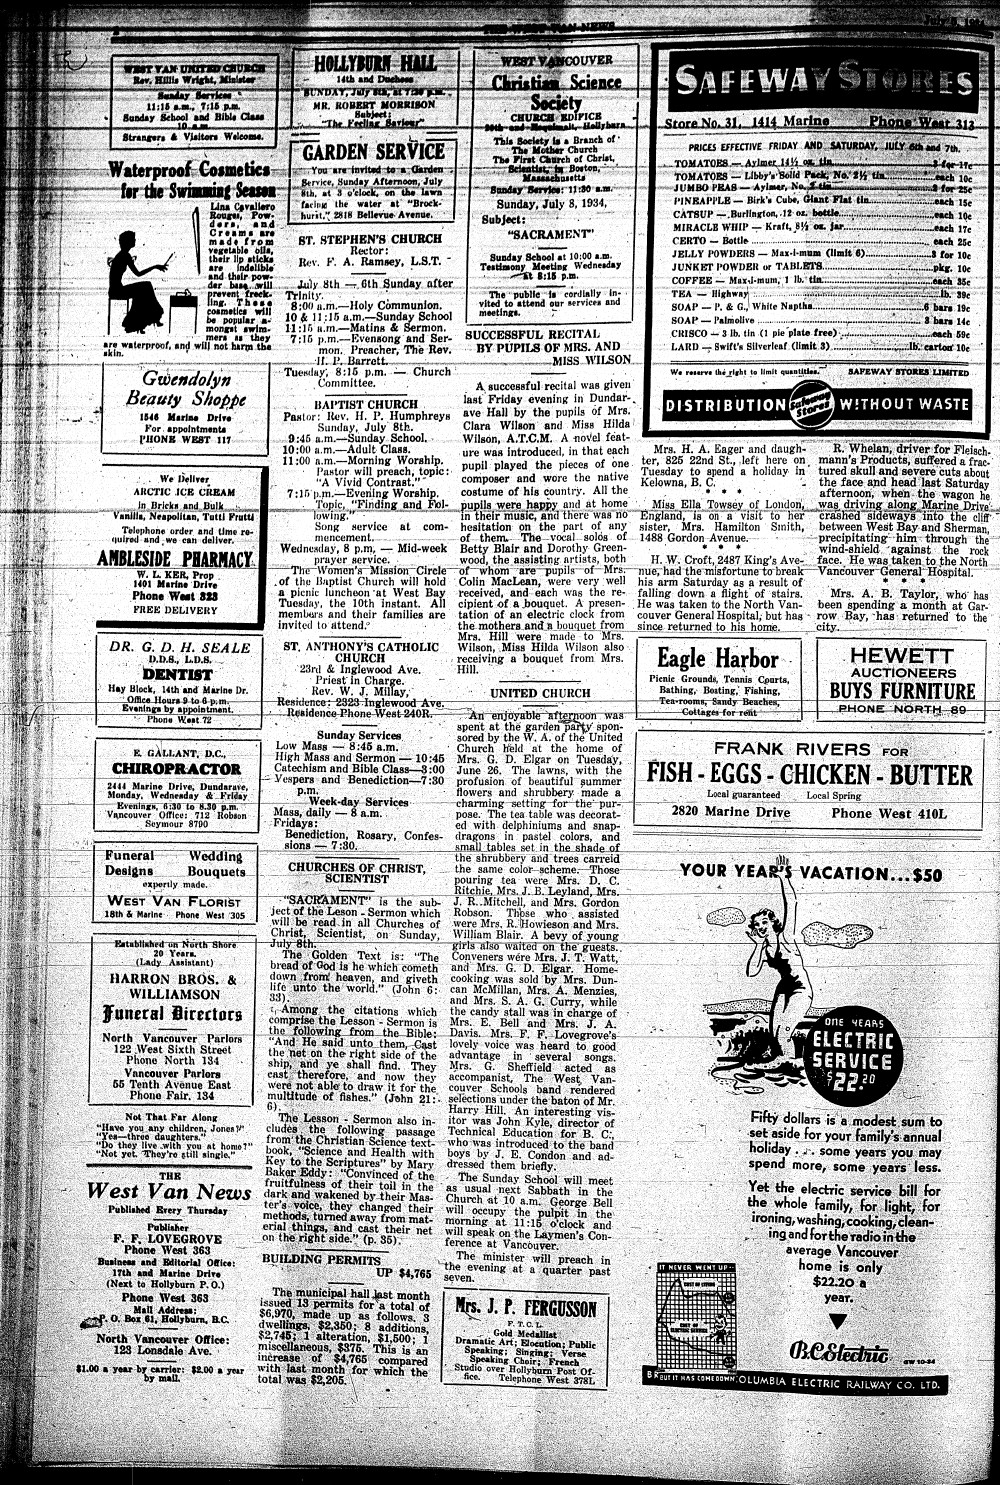 West Van. News (West Vancouver), 5 Jul 1934